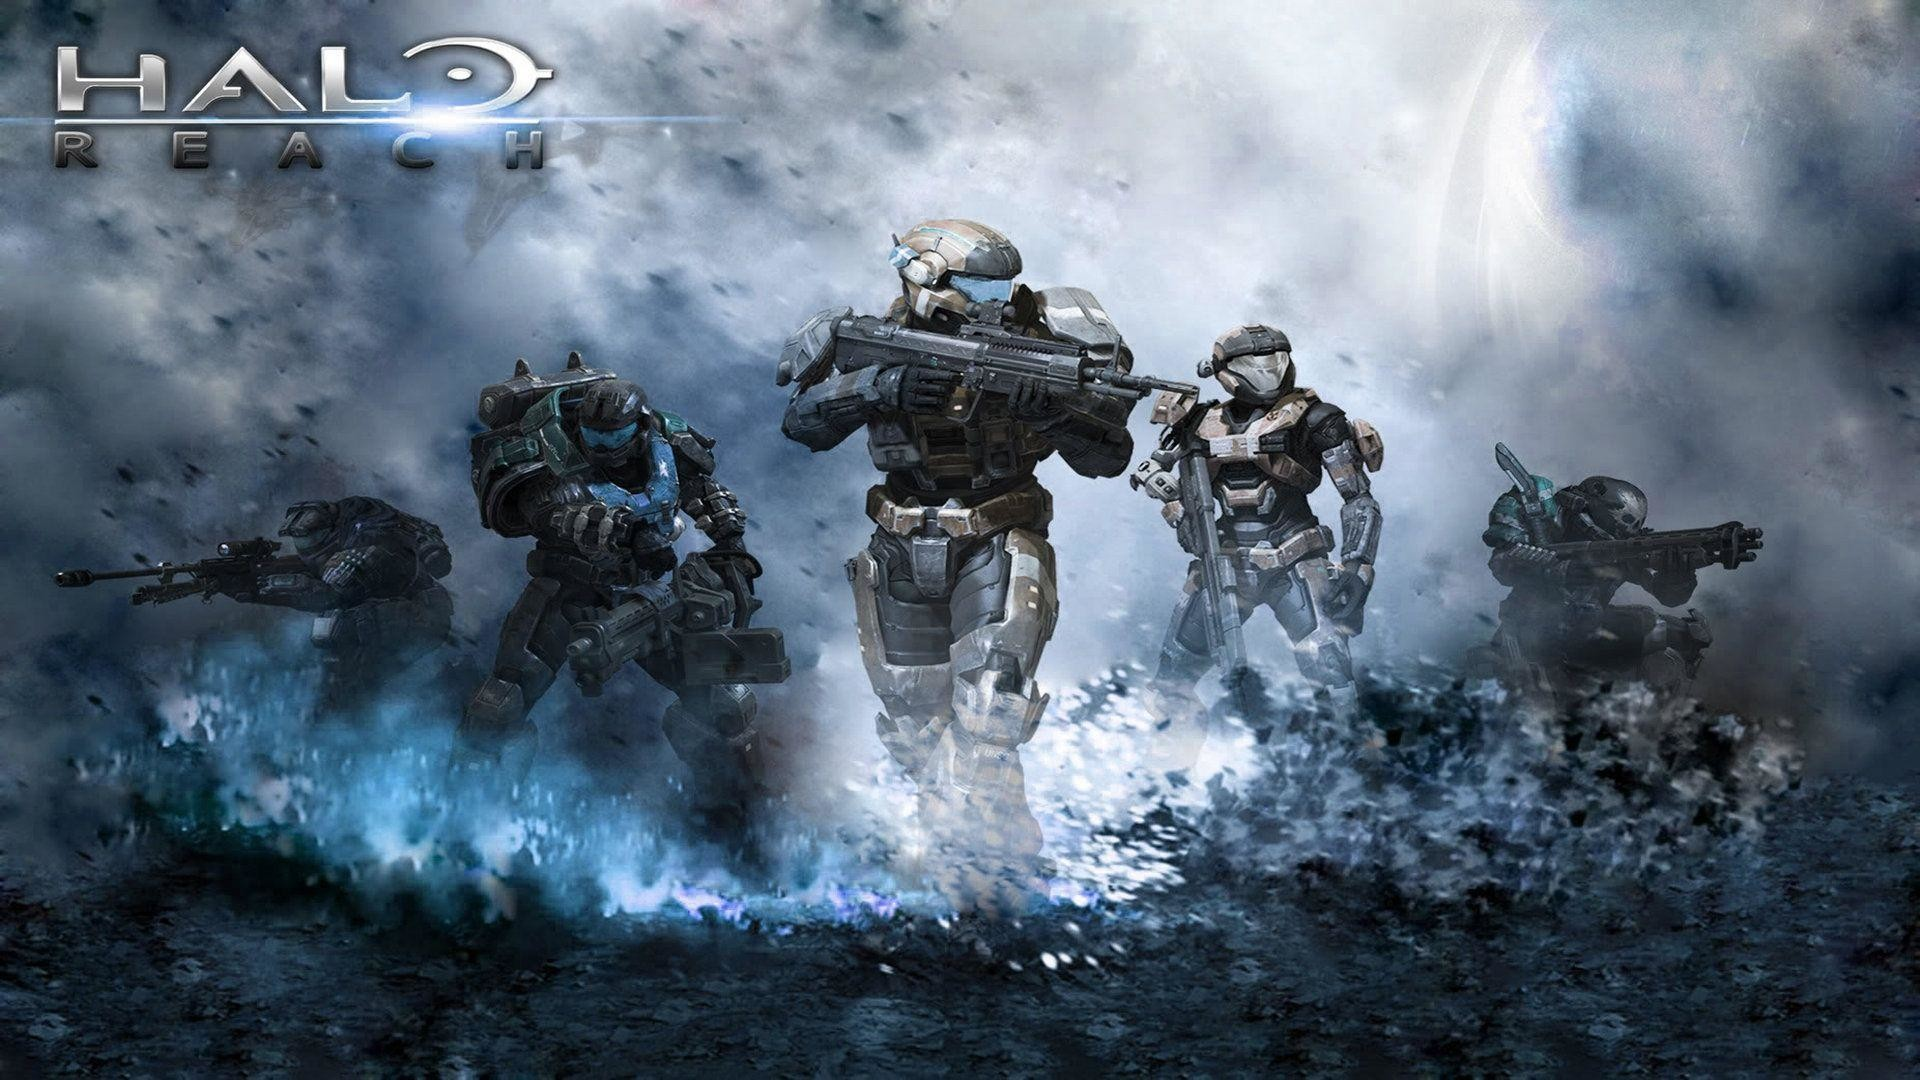 Res: 1920x1080, Wallpapers For > Halo Reach Wallpaper Hd 1080p